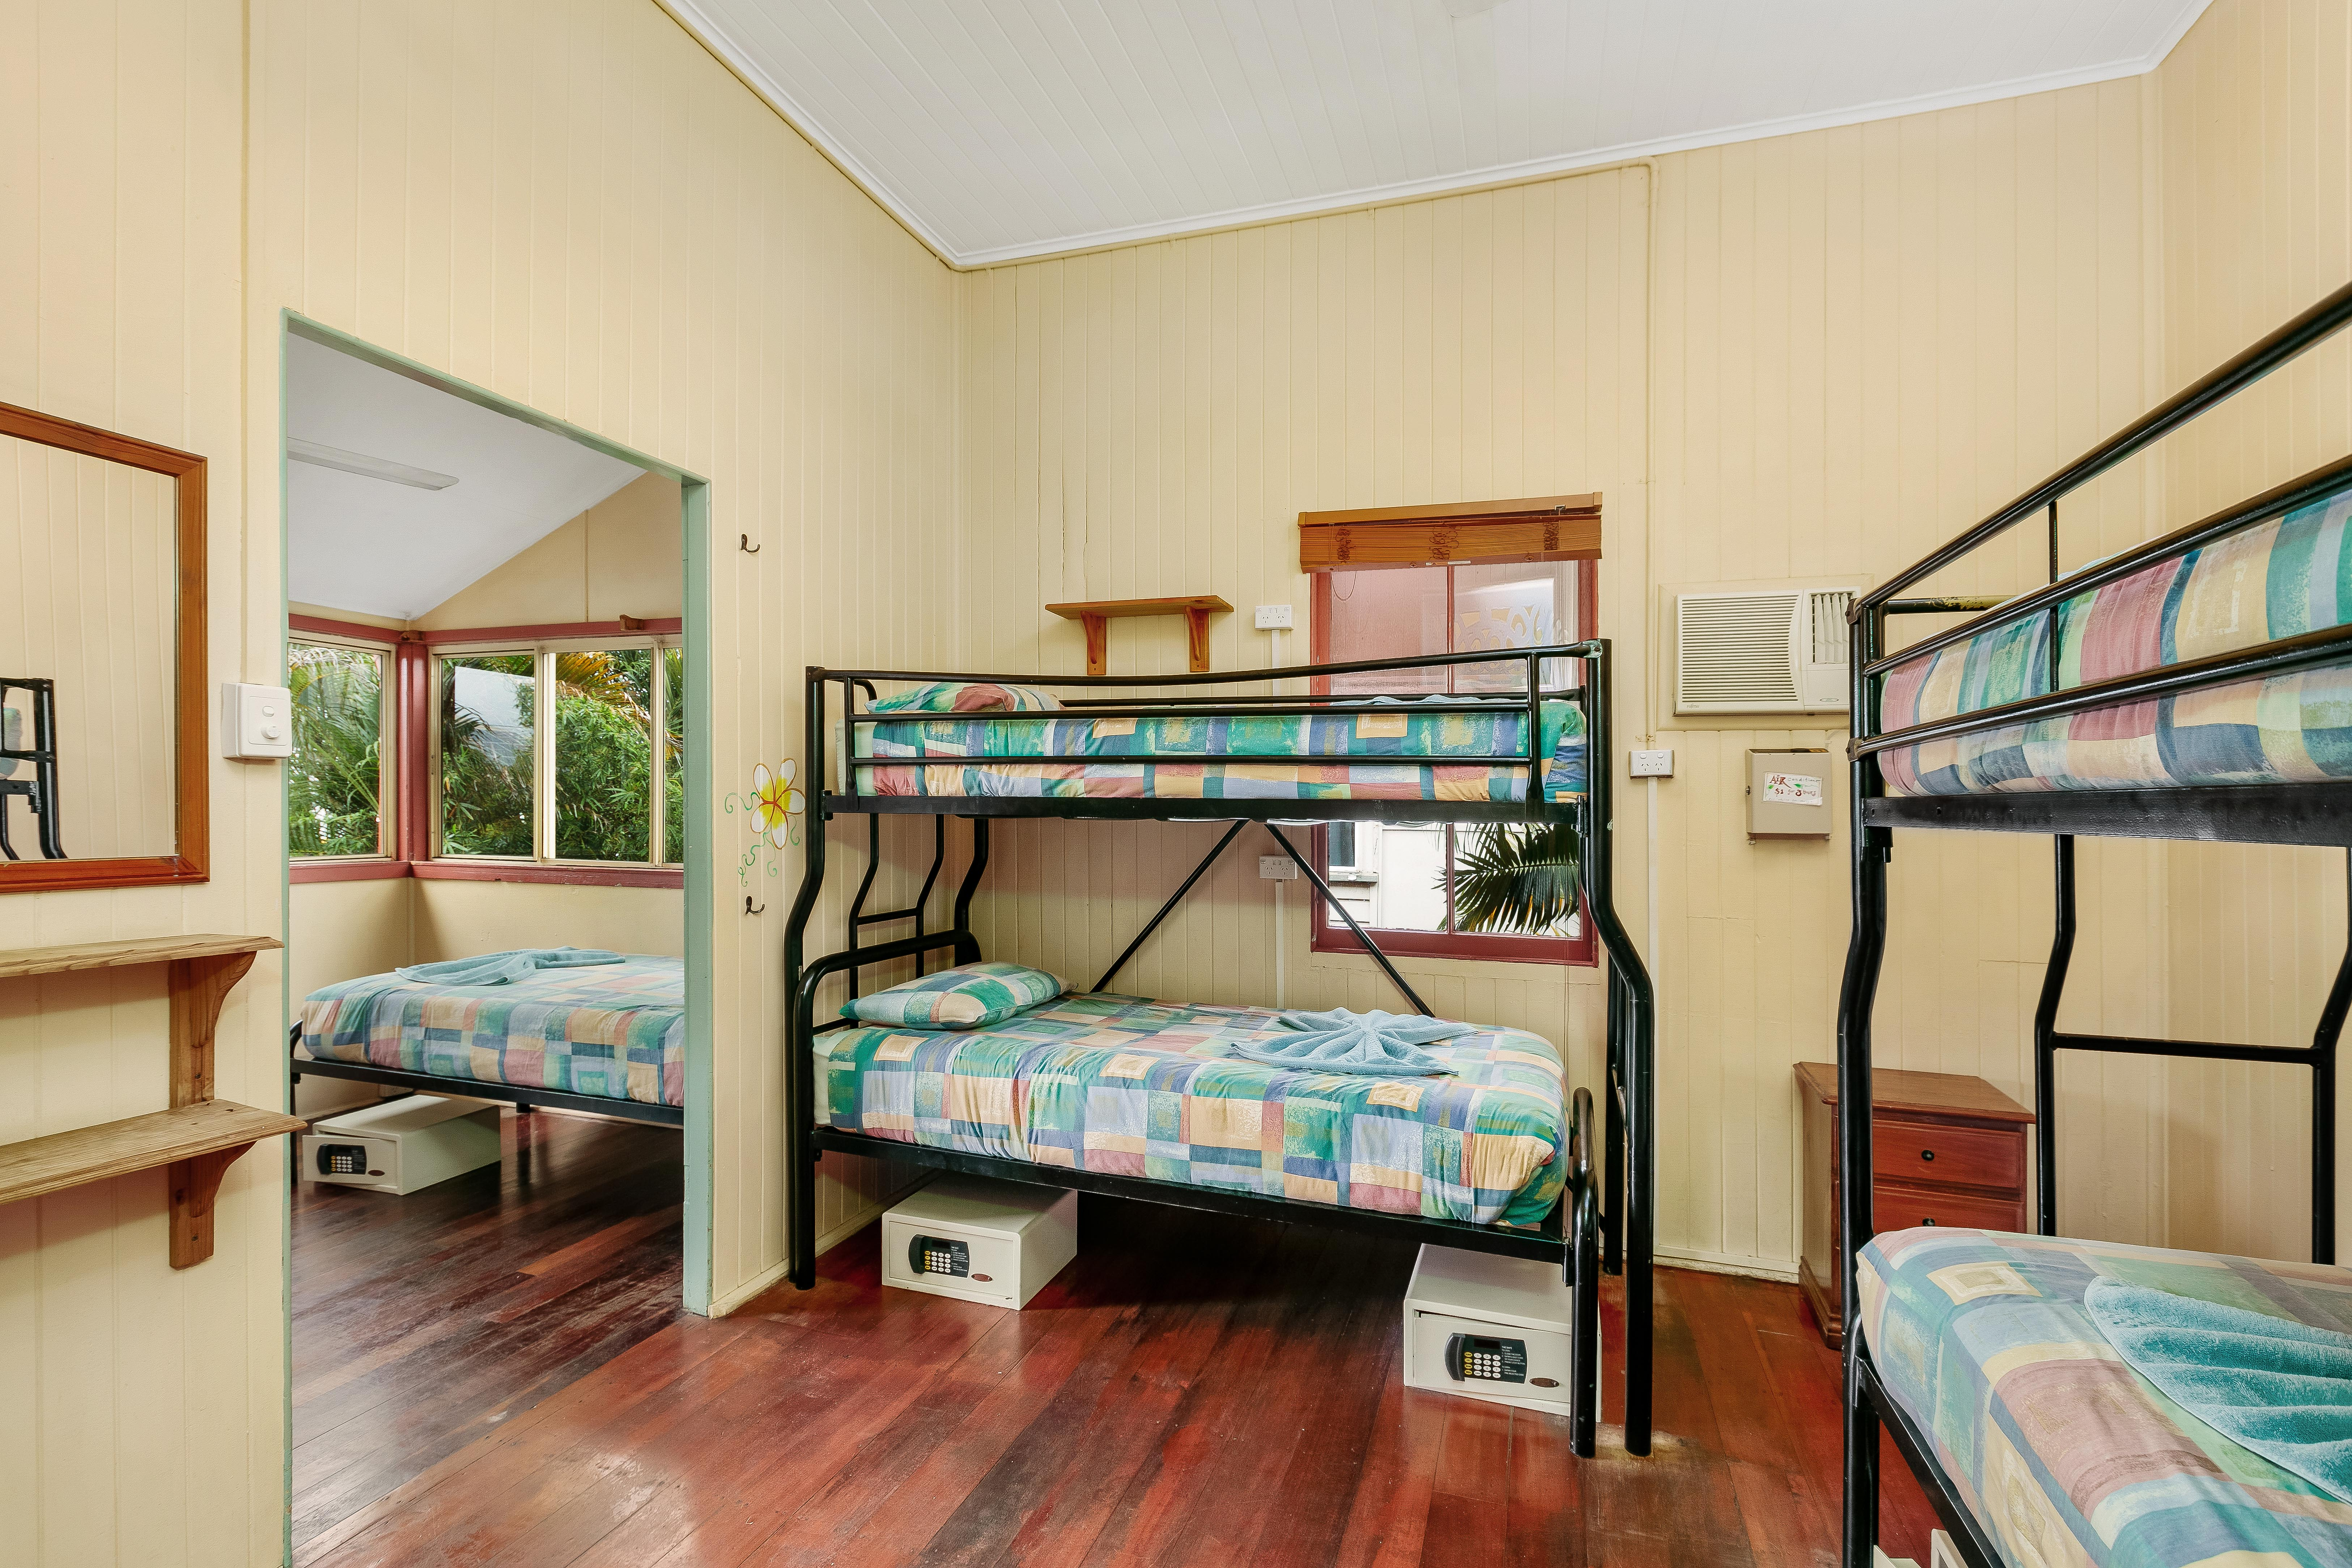 6 Bed Share Dorm